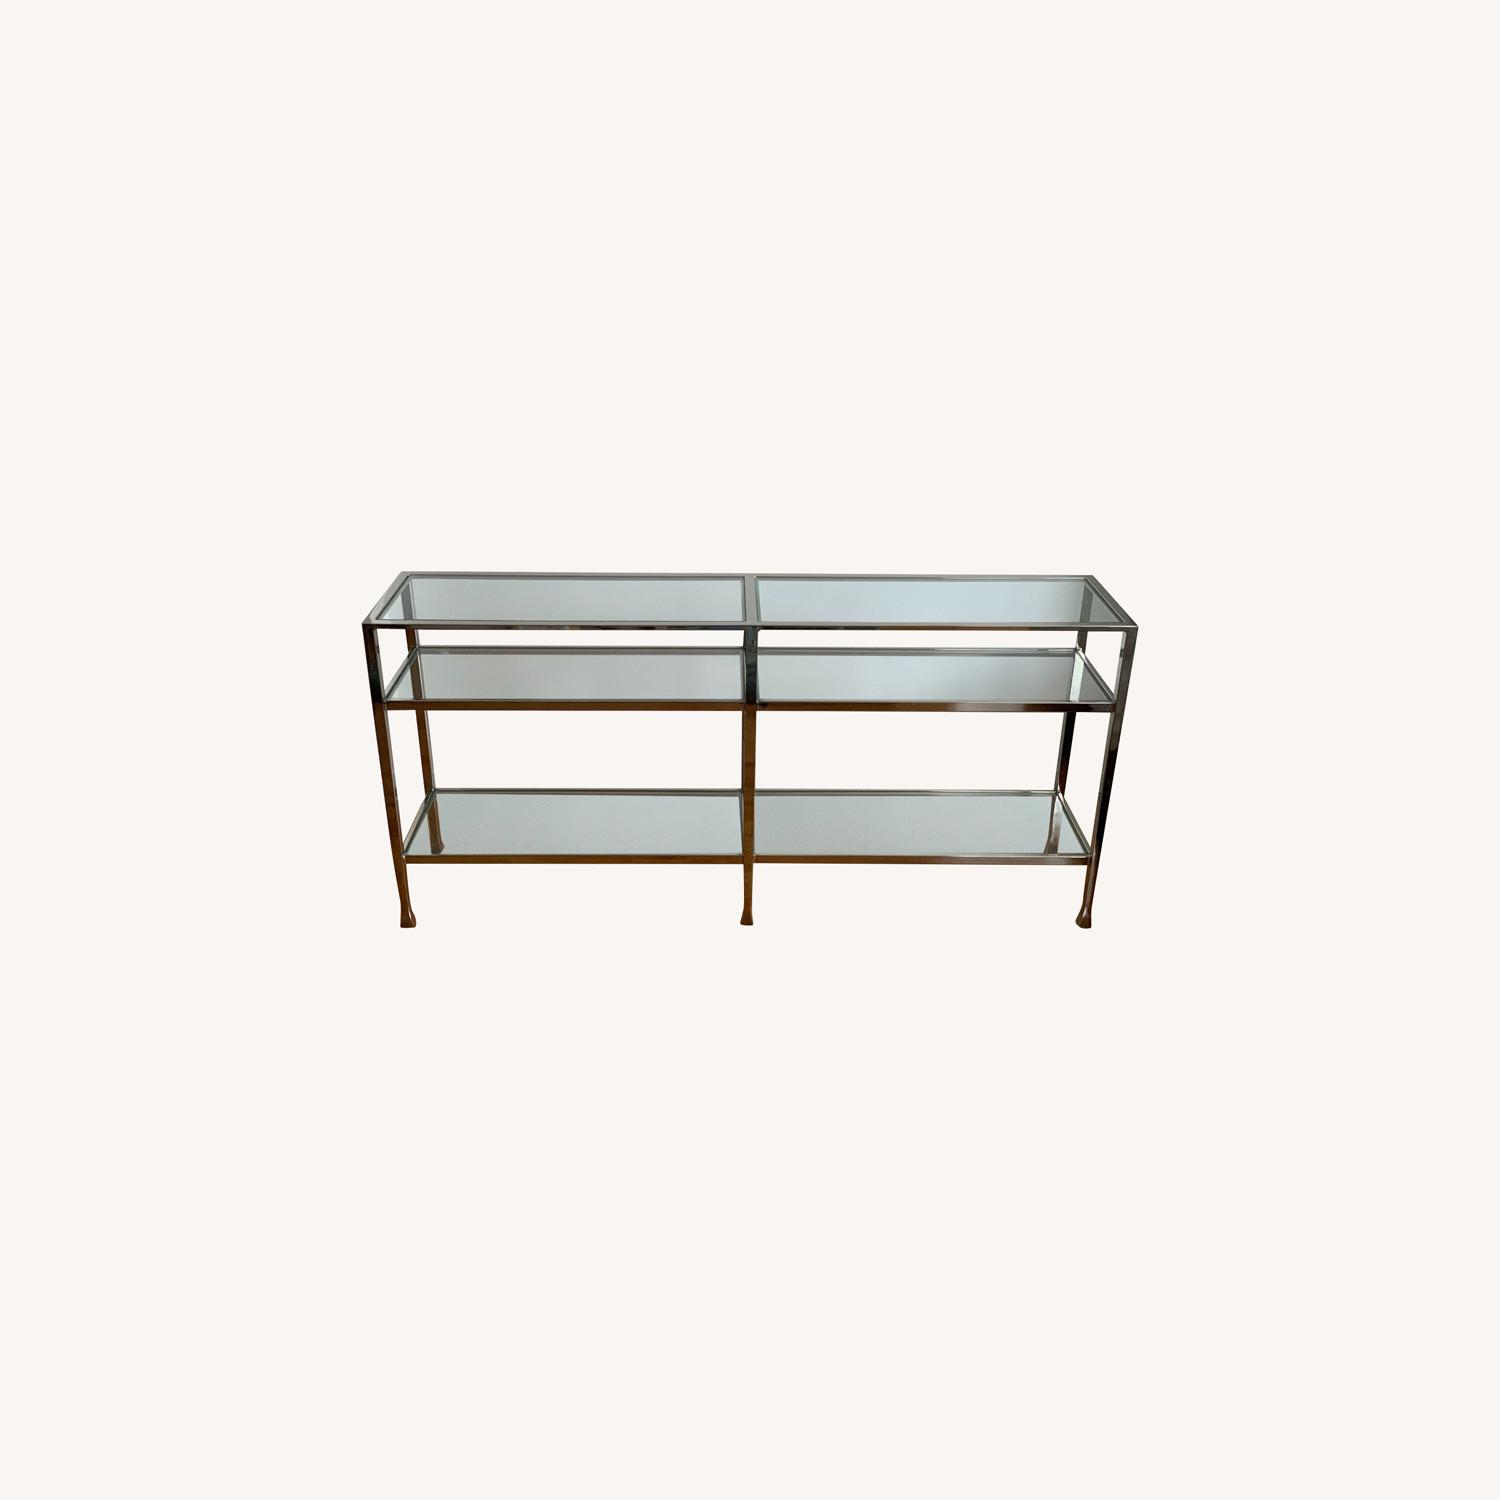 Pottery Barn Nickel Console Table - image-0